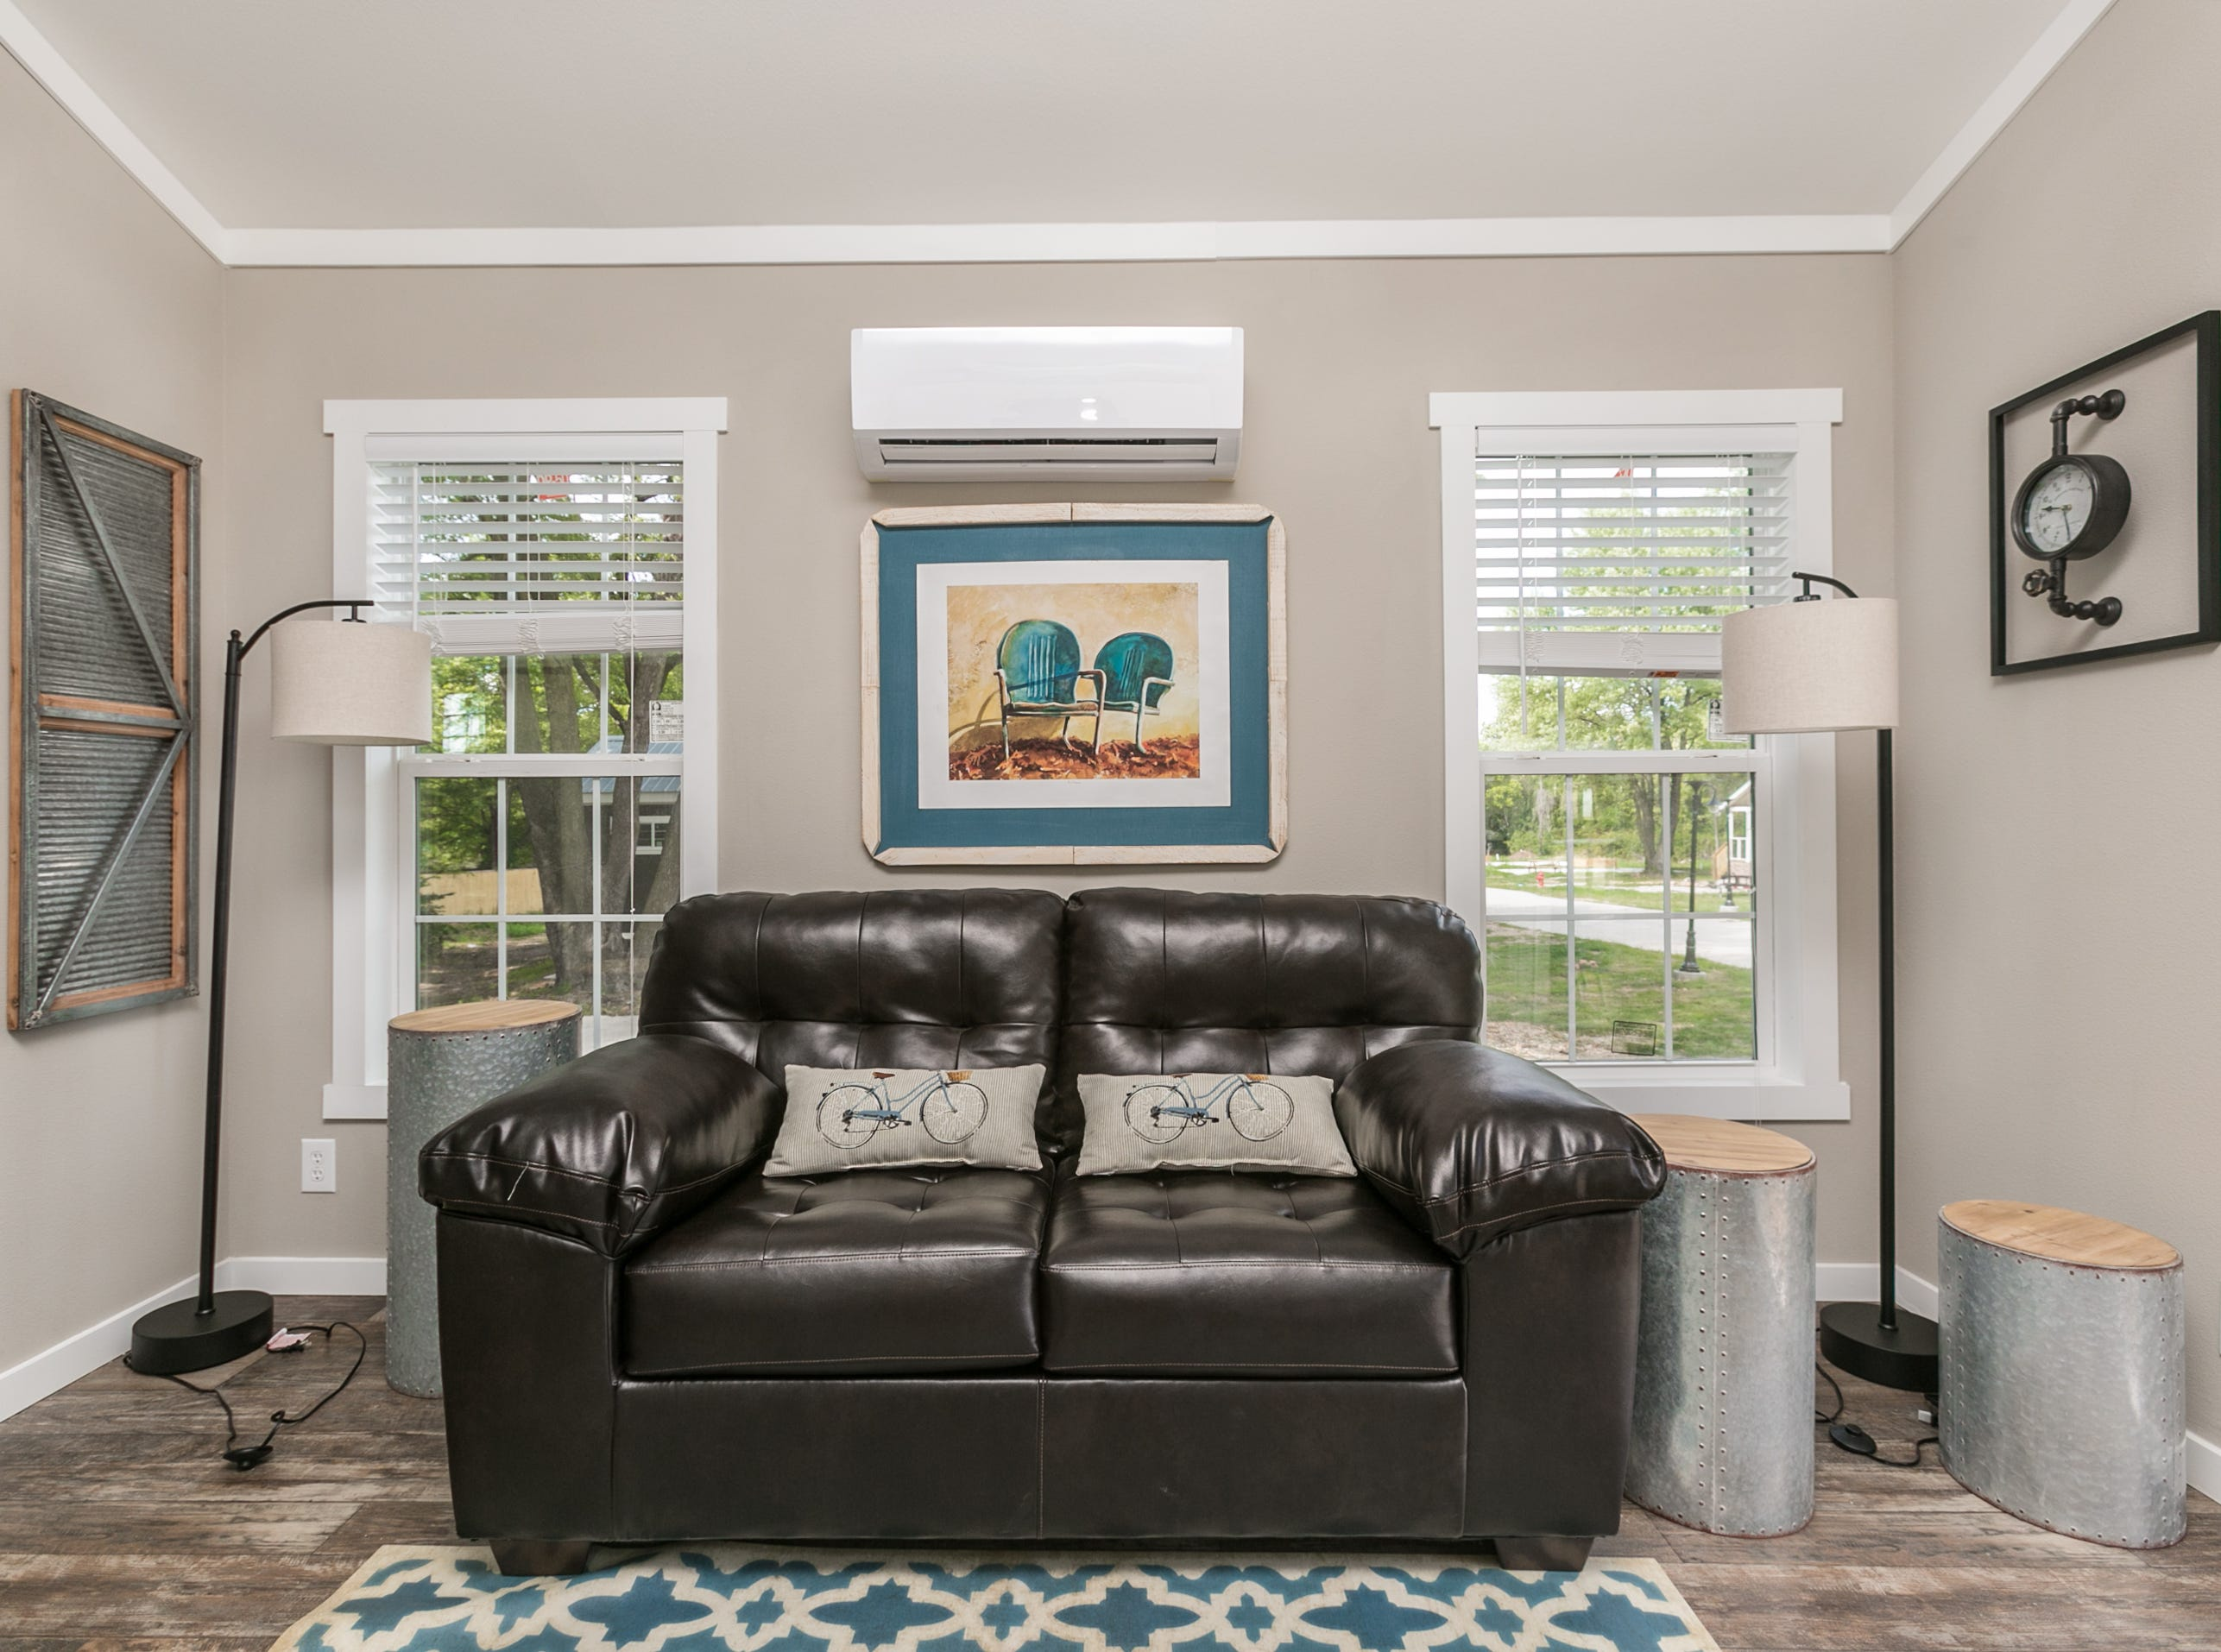 The living area is bright and cheerful, thanks to abundant natural light. Eden Village home donated by Mike and Mary Walker taken on September 4th, 2018.